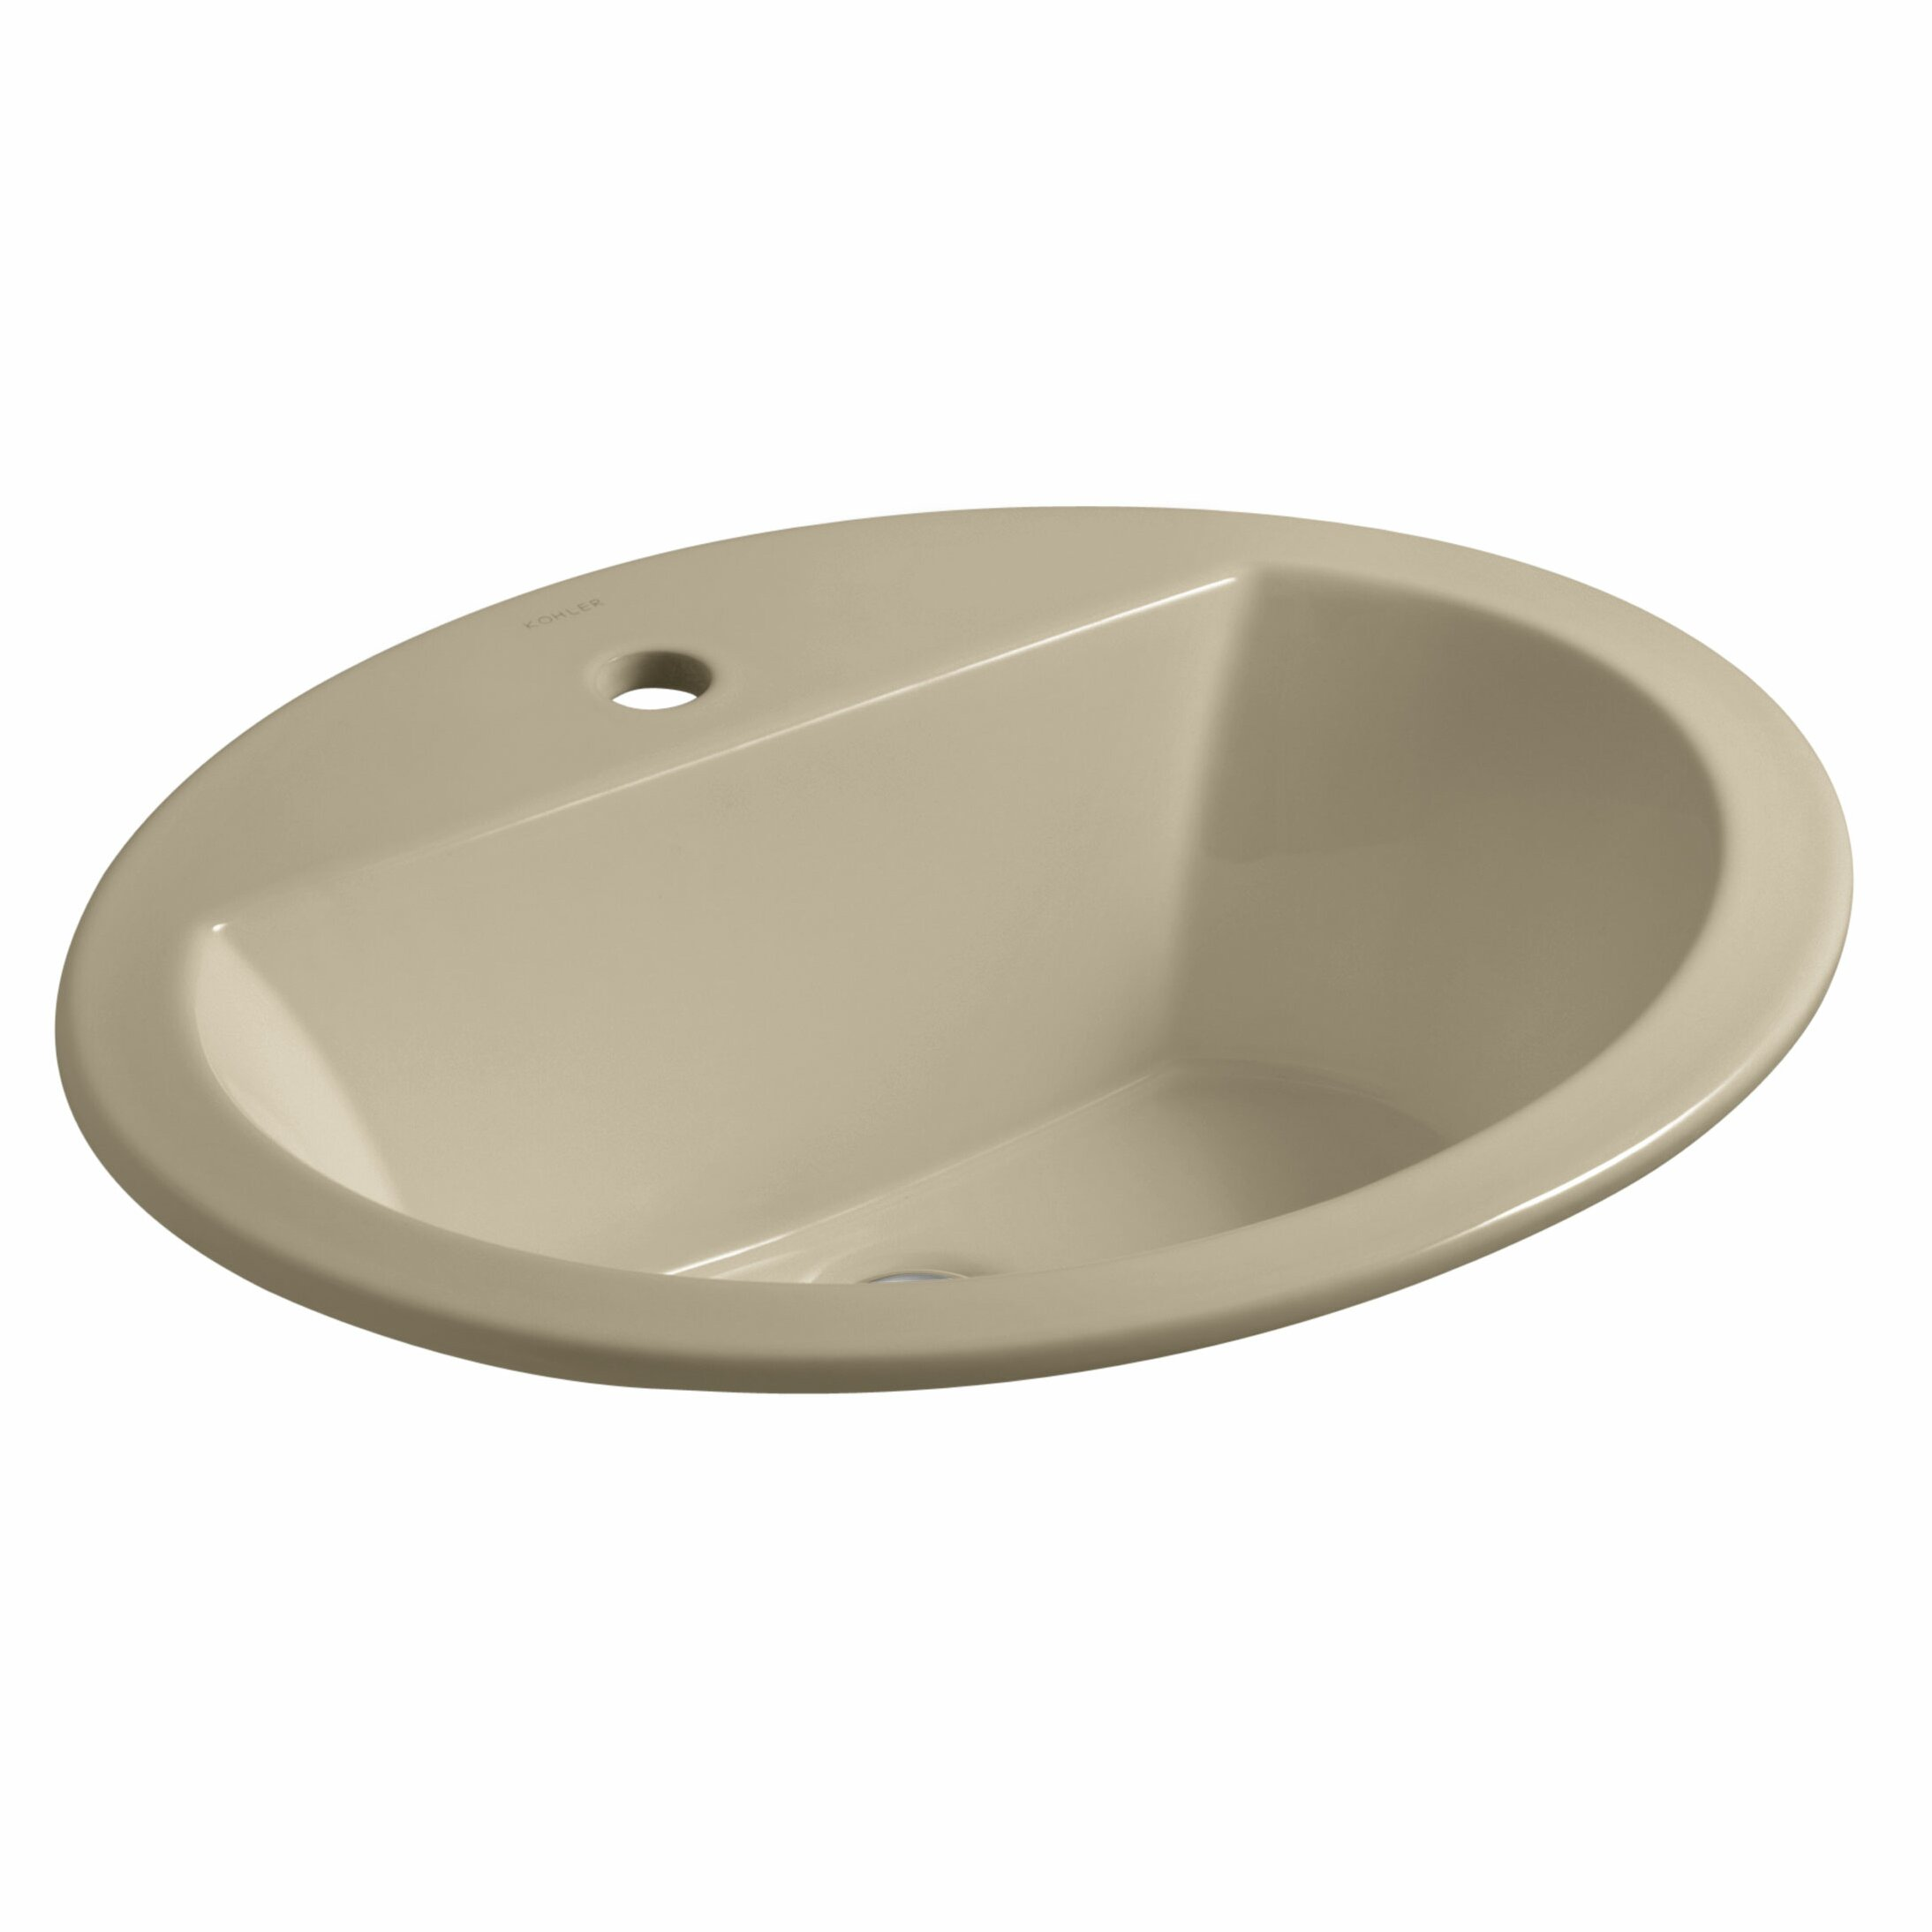 kohler bryant oval drop in bathroom sink with single faucet hole review. Black Bedroom Furniture Sets. Home Design Ideas